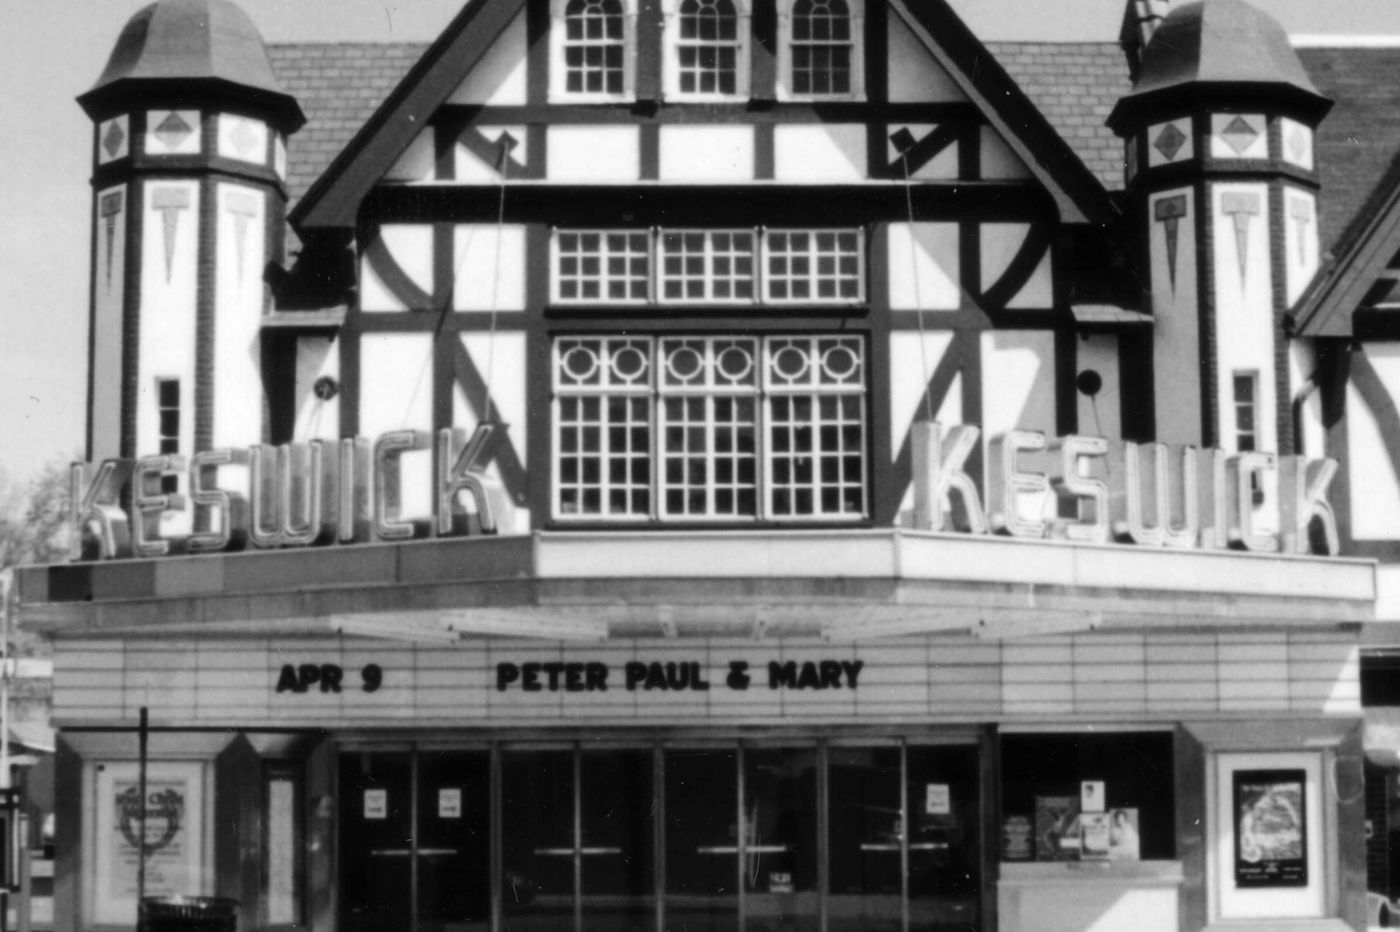 The Keswick Theatre kicks off its 90th year